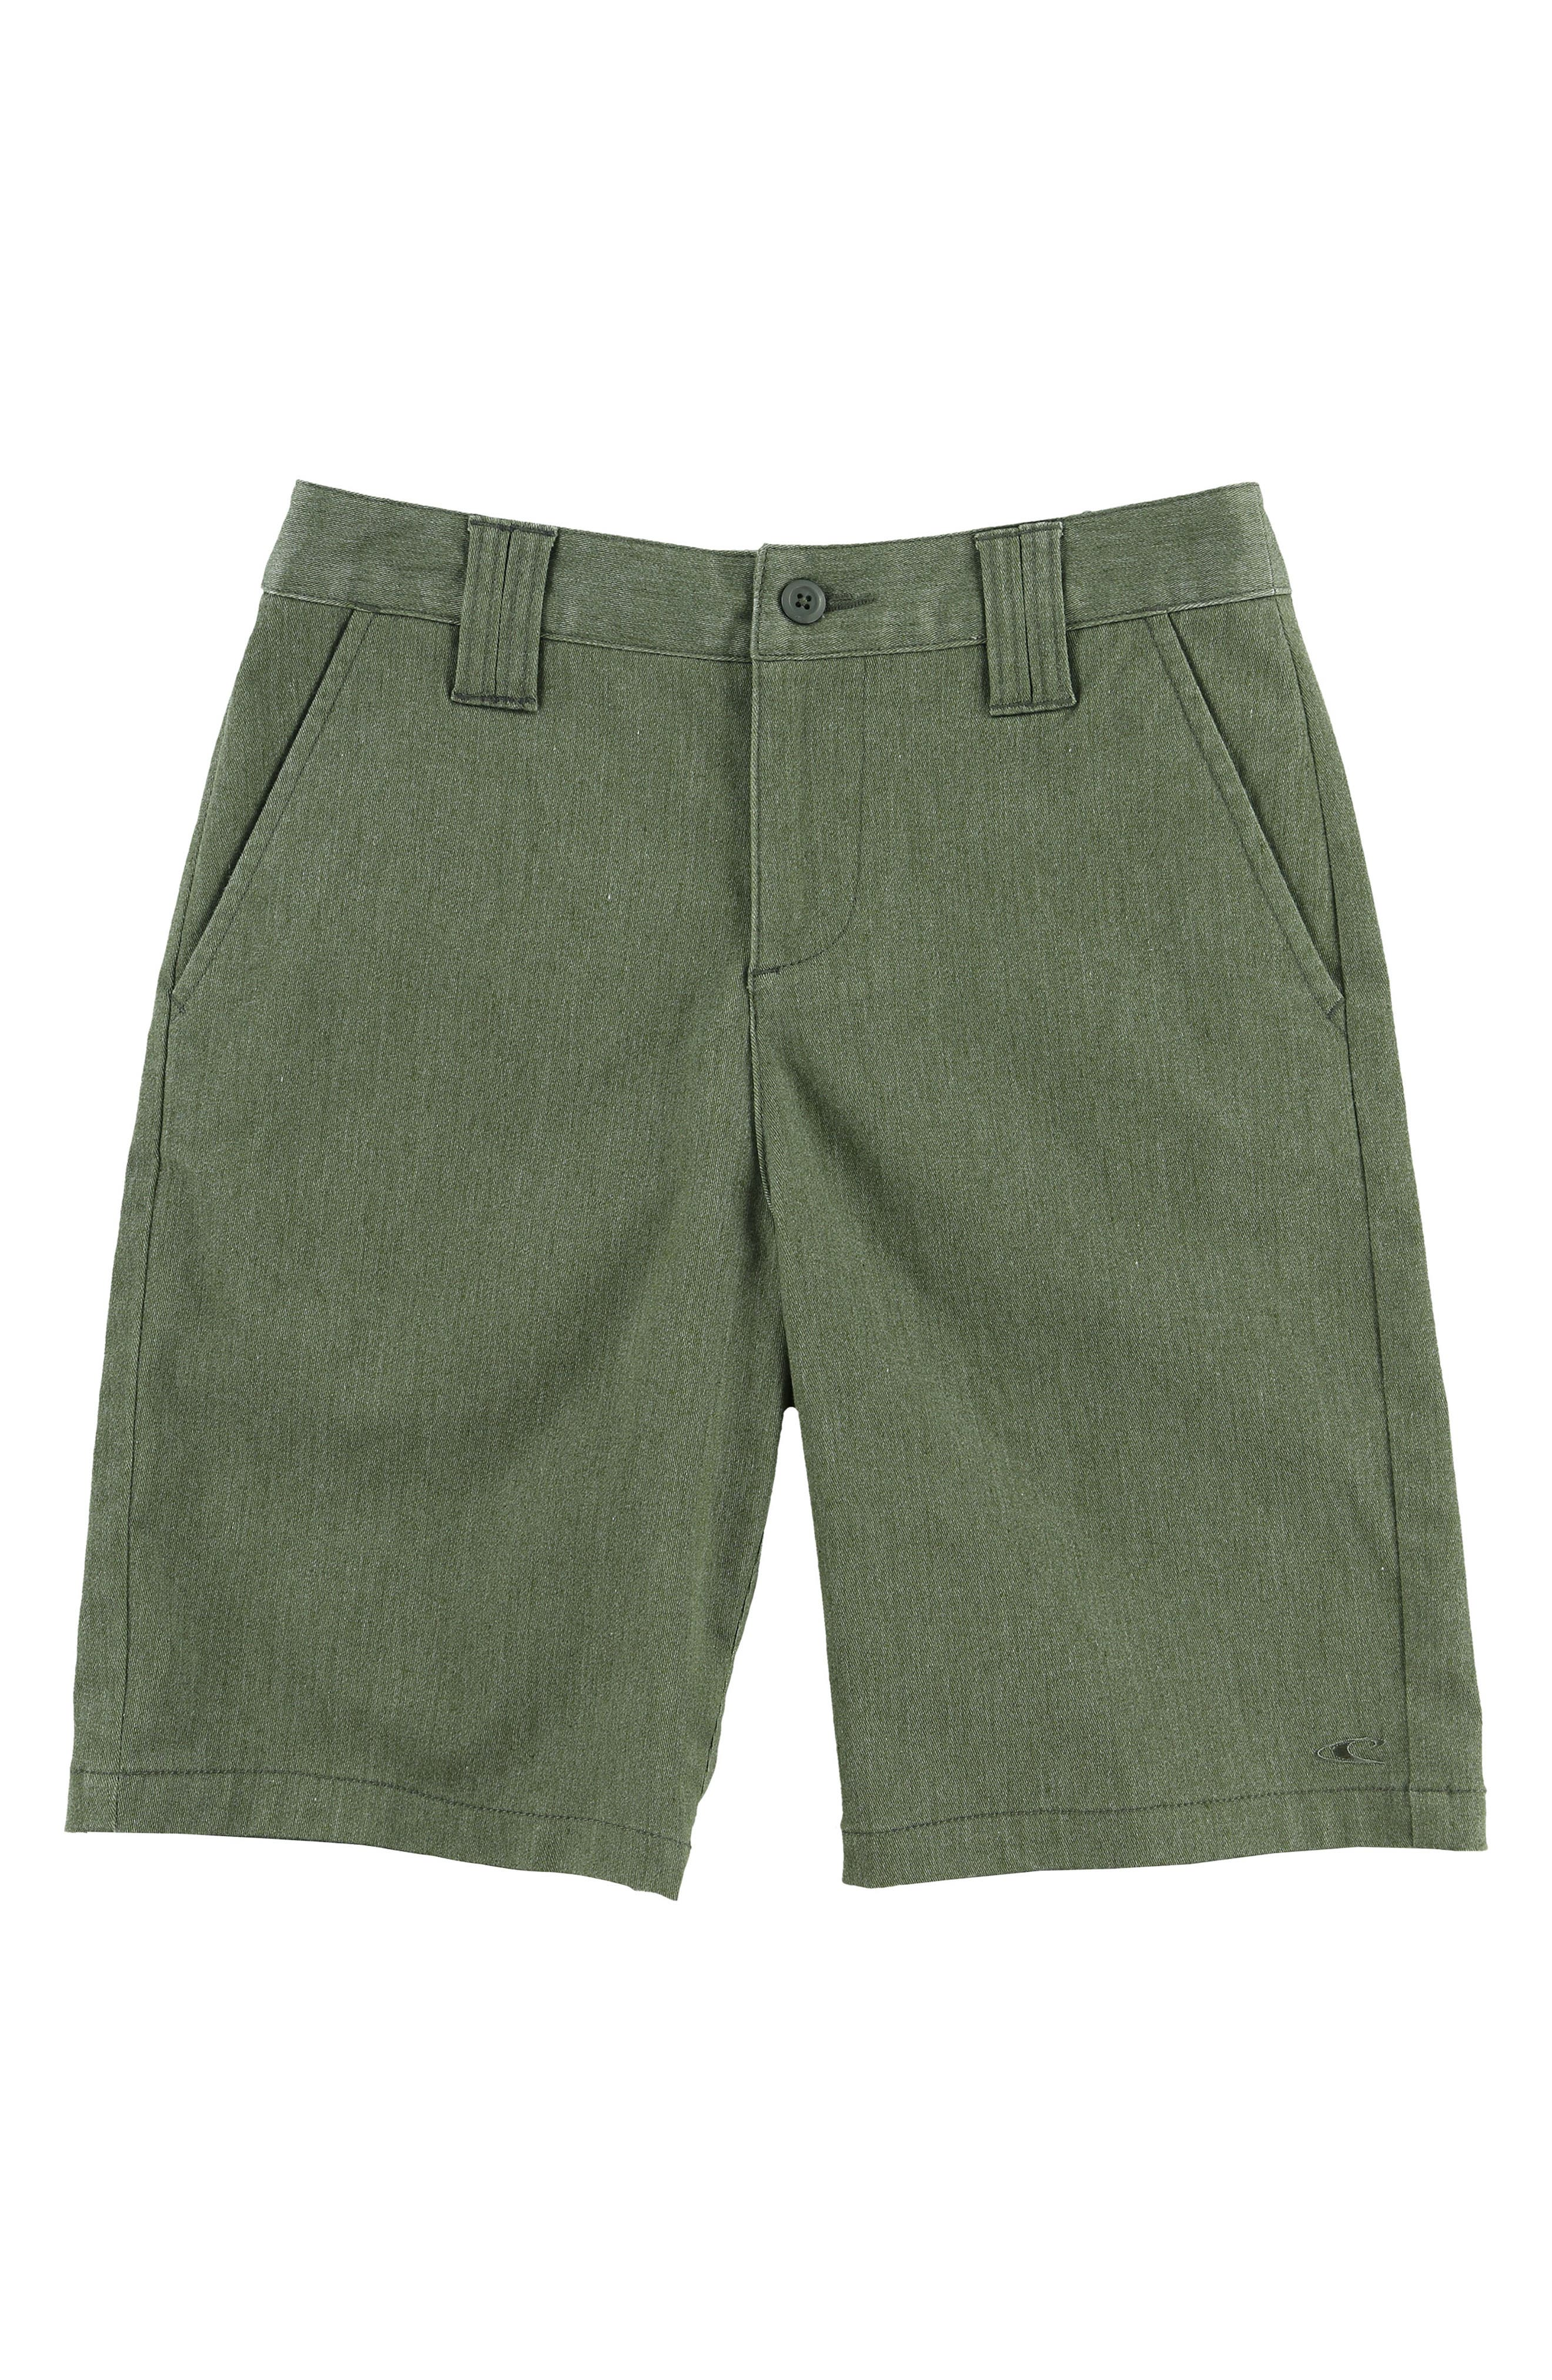 Alternate Image 1 Selected - O'Neill Contact Stretch Shorts (Big Boys)